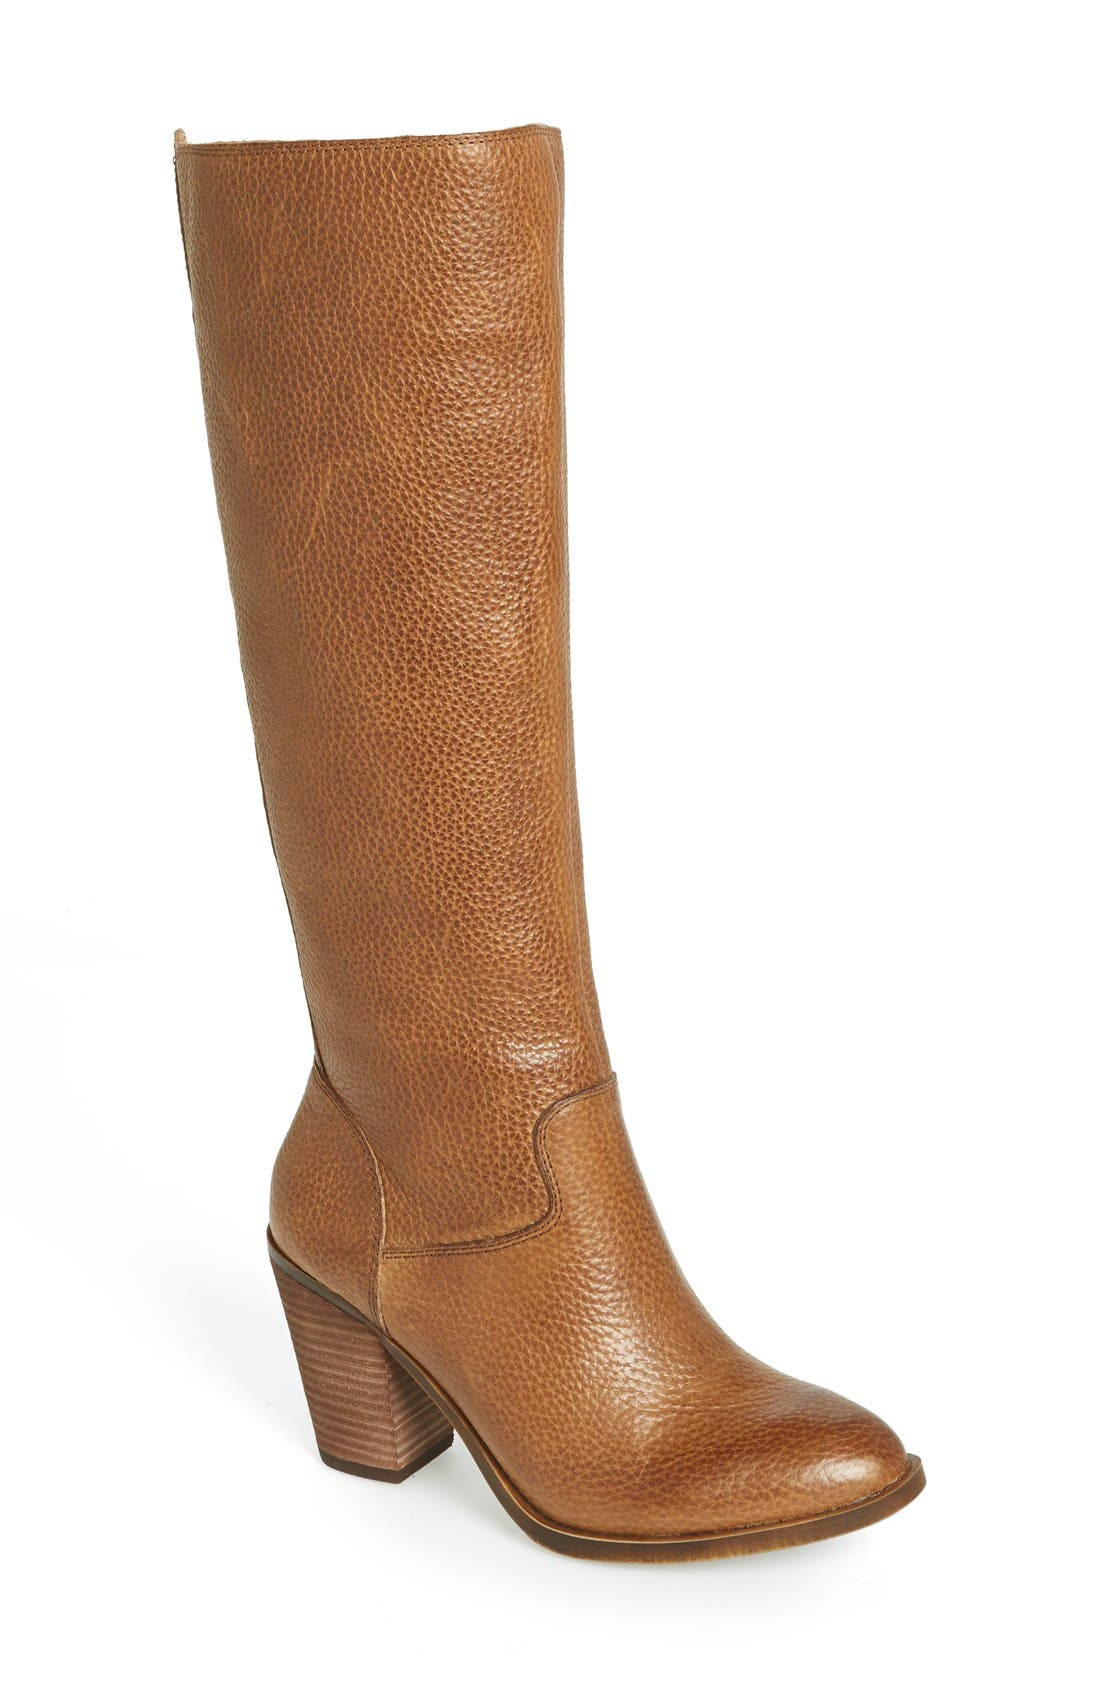 Main Image - Lucky Brand 'Espositoh' Tall Boot (Women)